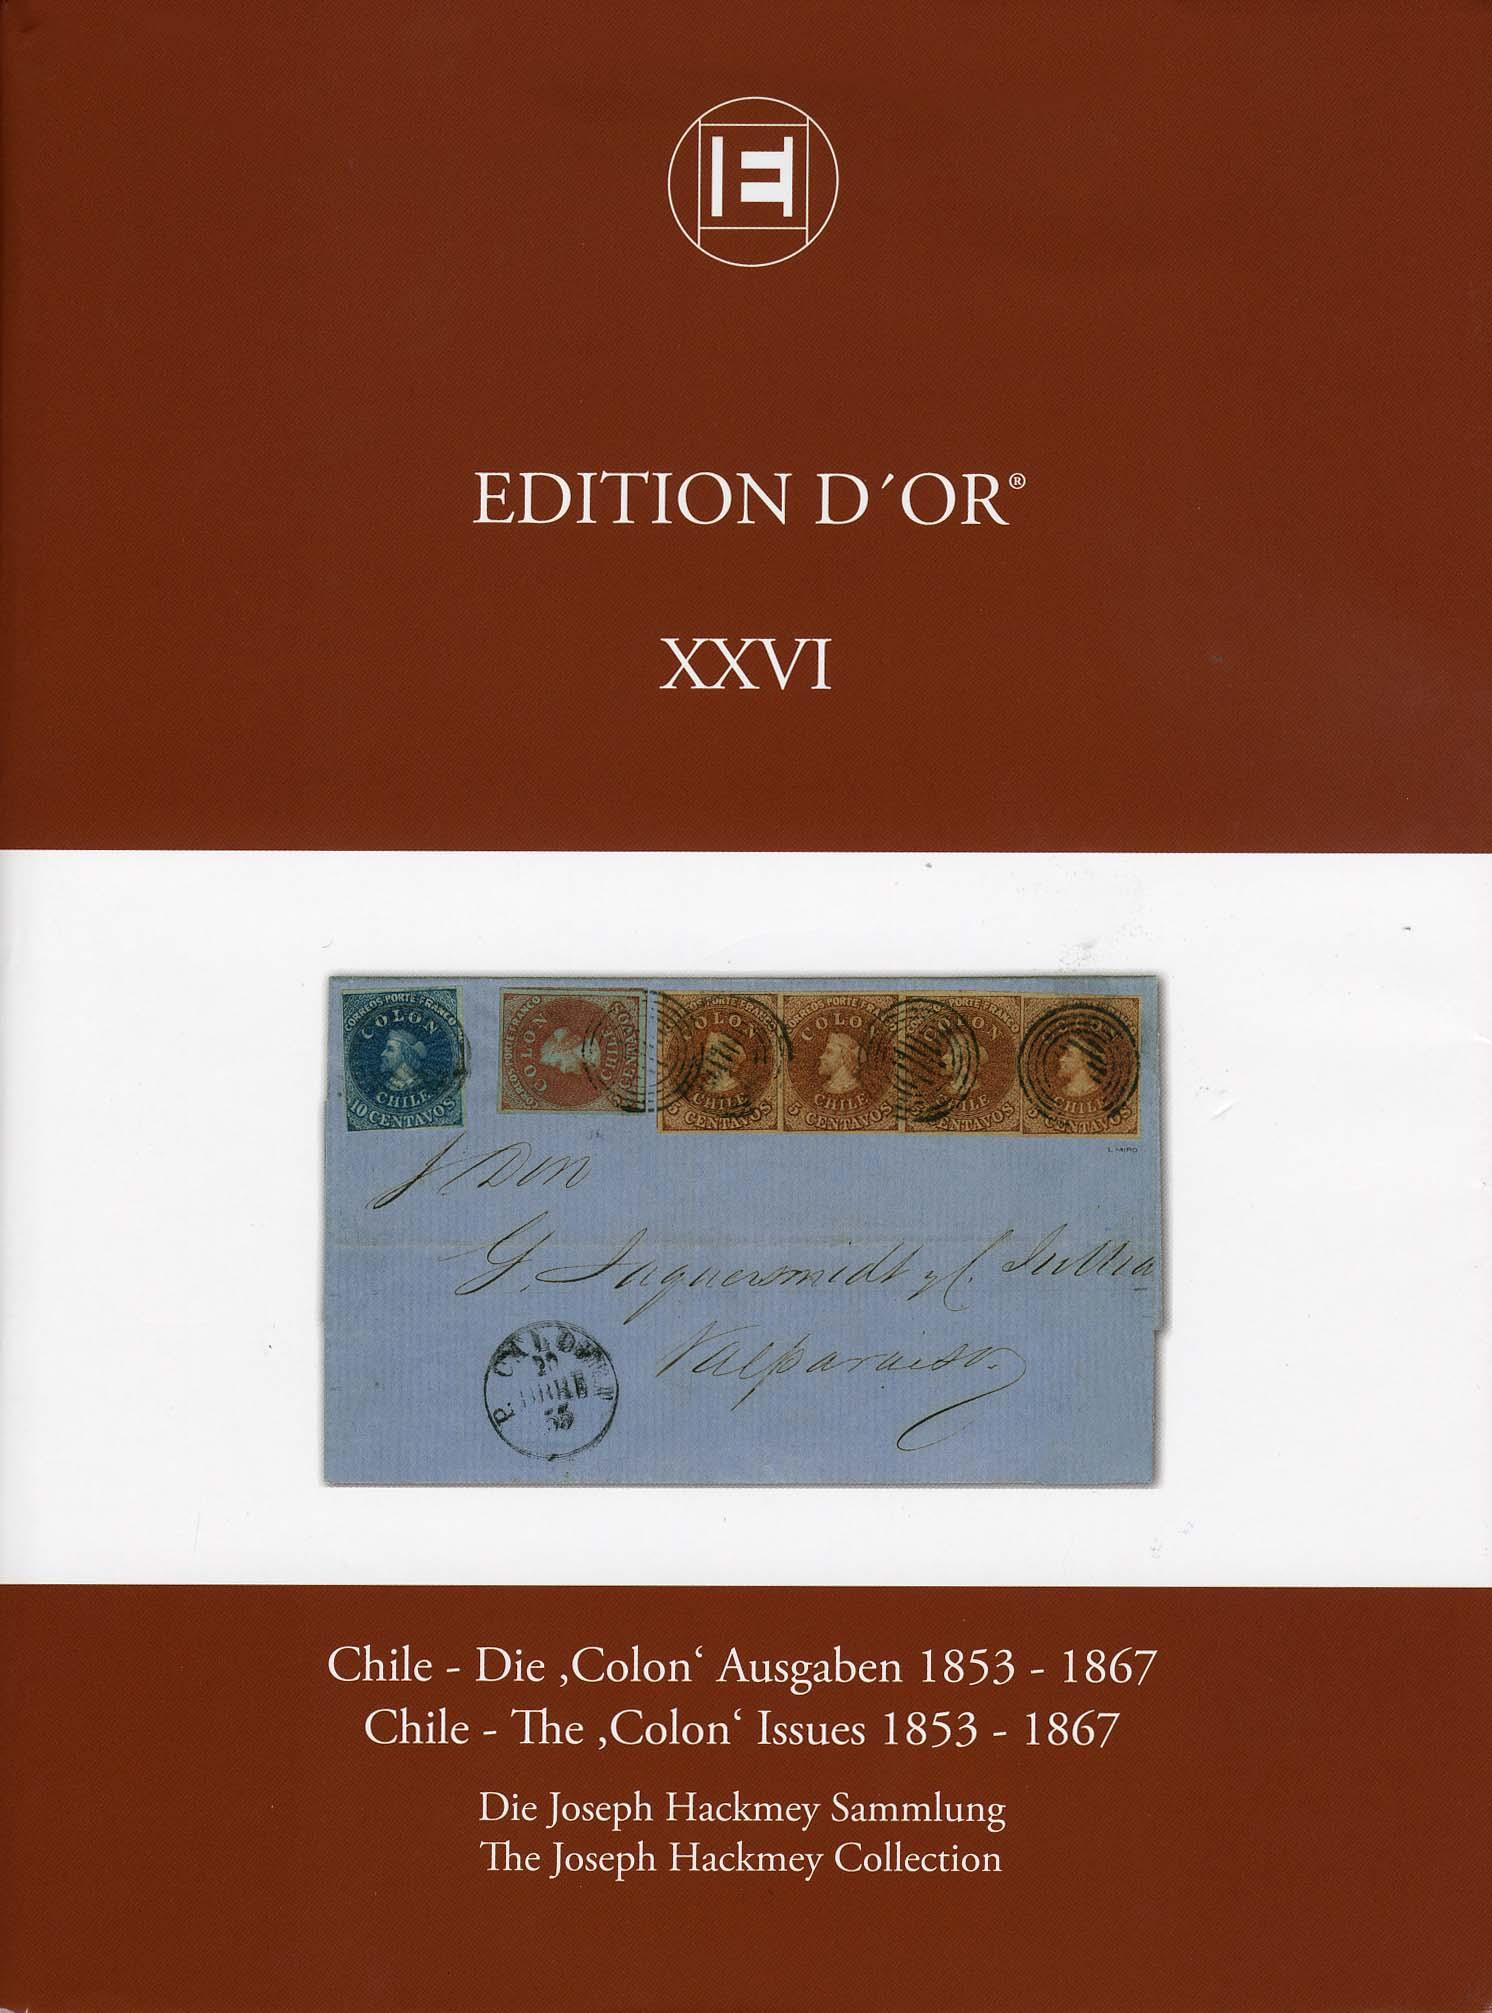 Vol. 26: Chile - The 'Colon'-Issues 1853-1867 • The Joseph Hackmey Collection